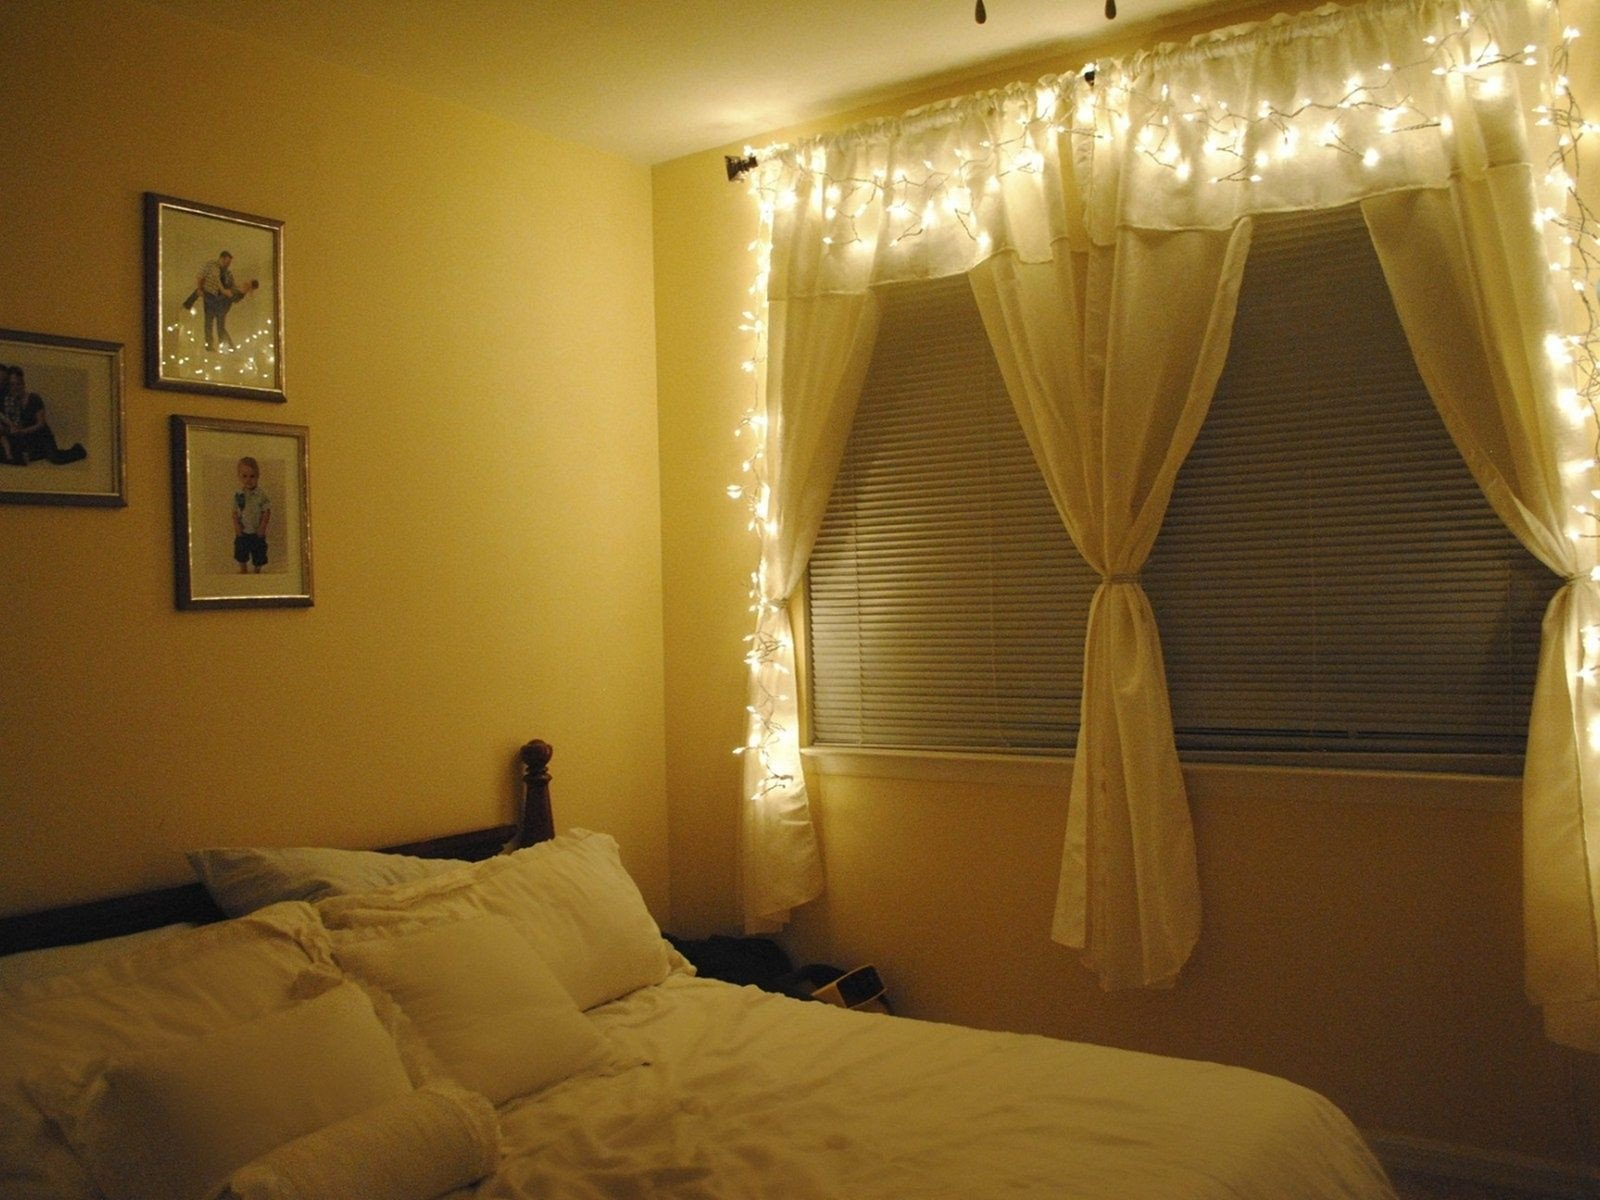 Decorative Light for Bedroom Luxury 35 Amazing Christmas Light Bedroom Decoration Ideas